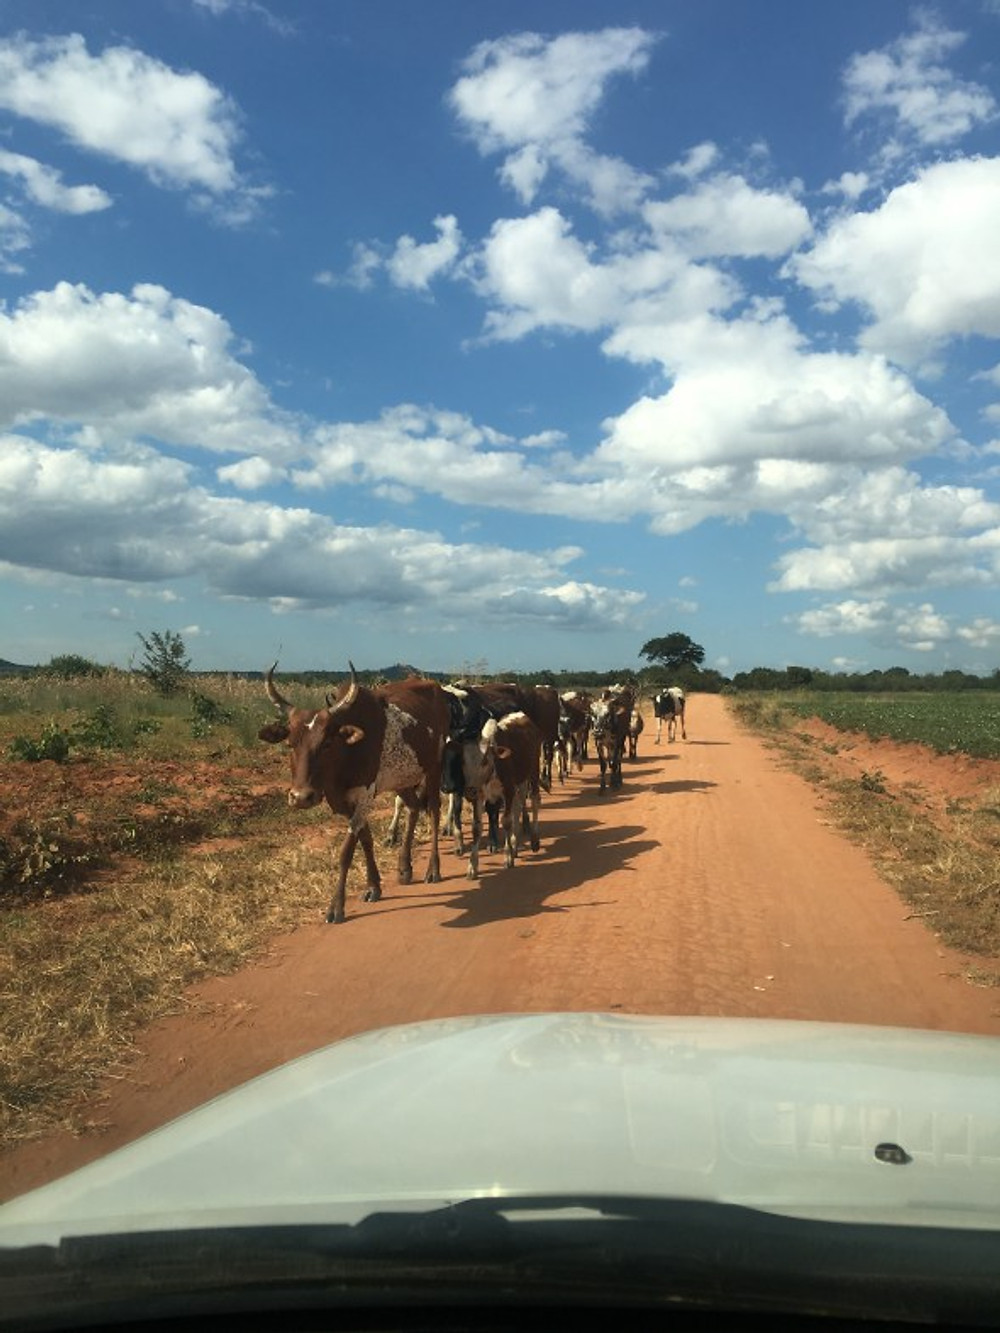 cows on the road in Malawi